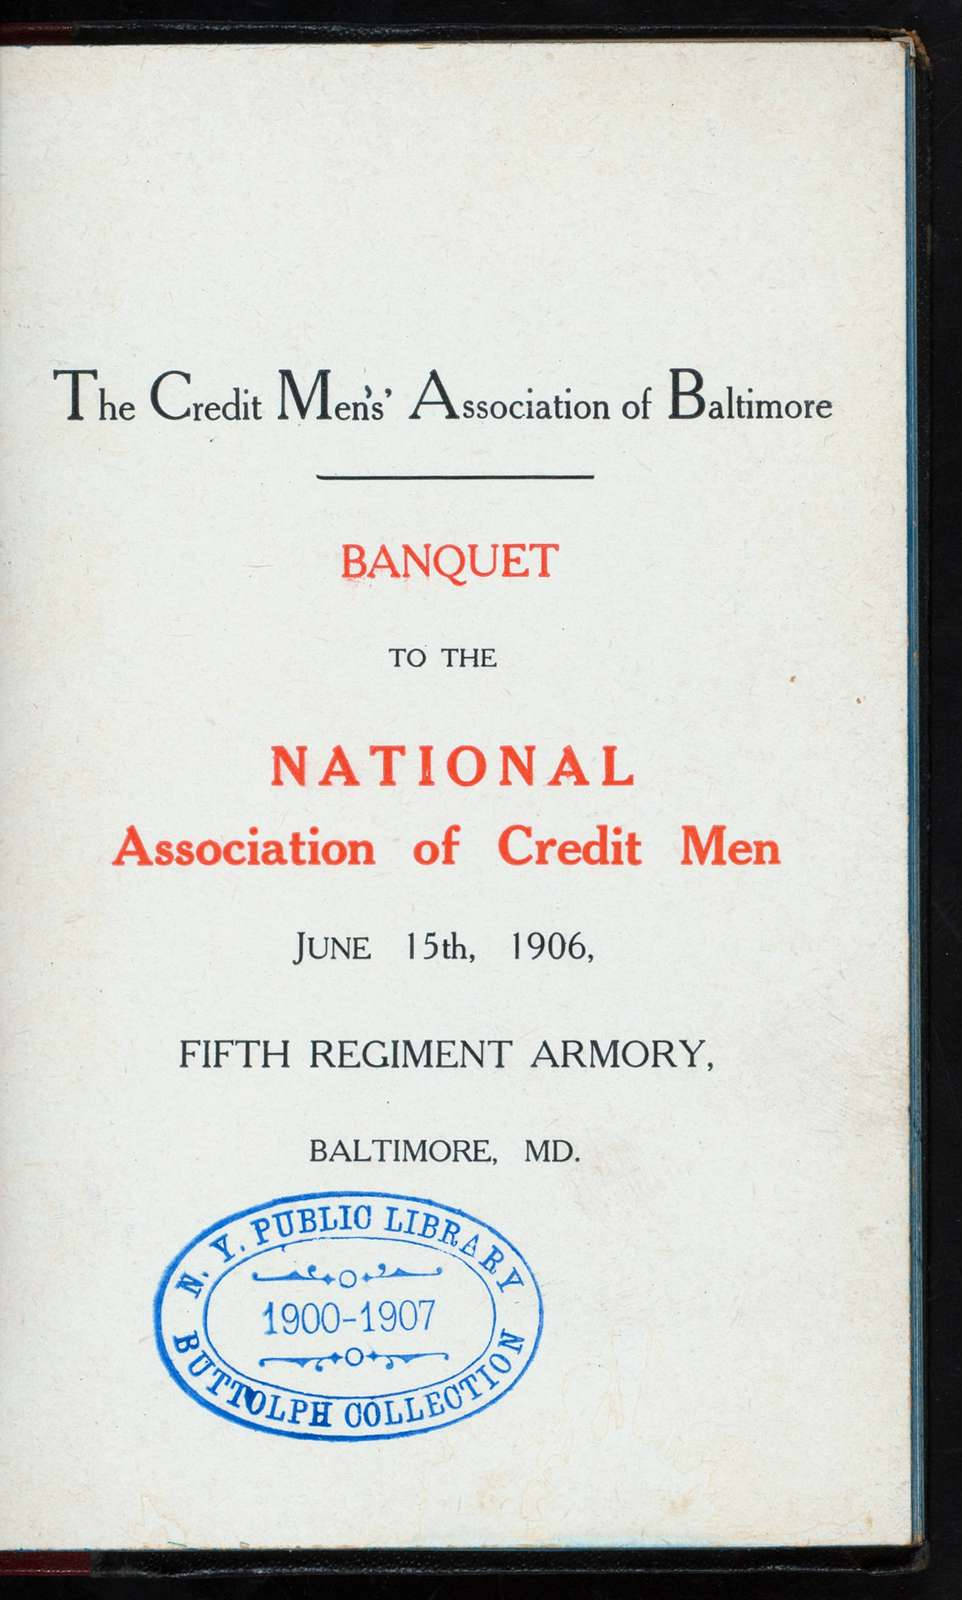 """BANQUET TO NATIONAL ASSOCIATION OF CREDIT MEN [held by] CREDIT MENS' ASSOCIATIOOOON OF BALTIMORE [at] """"BALTIMORE,MD."""" (ARMORY)"""